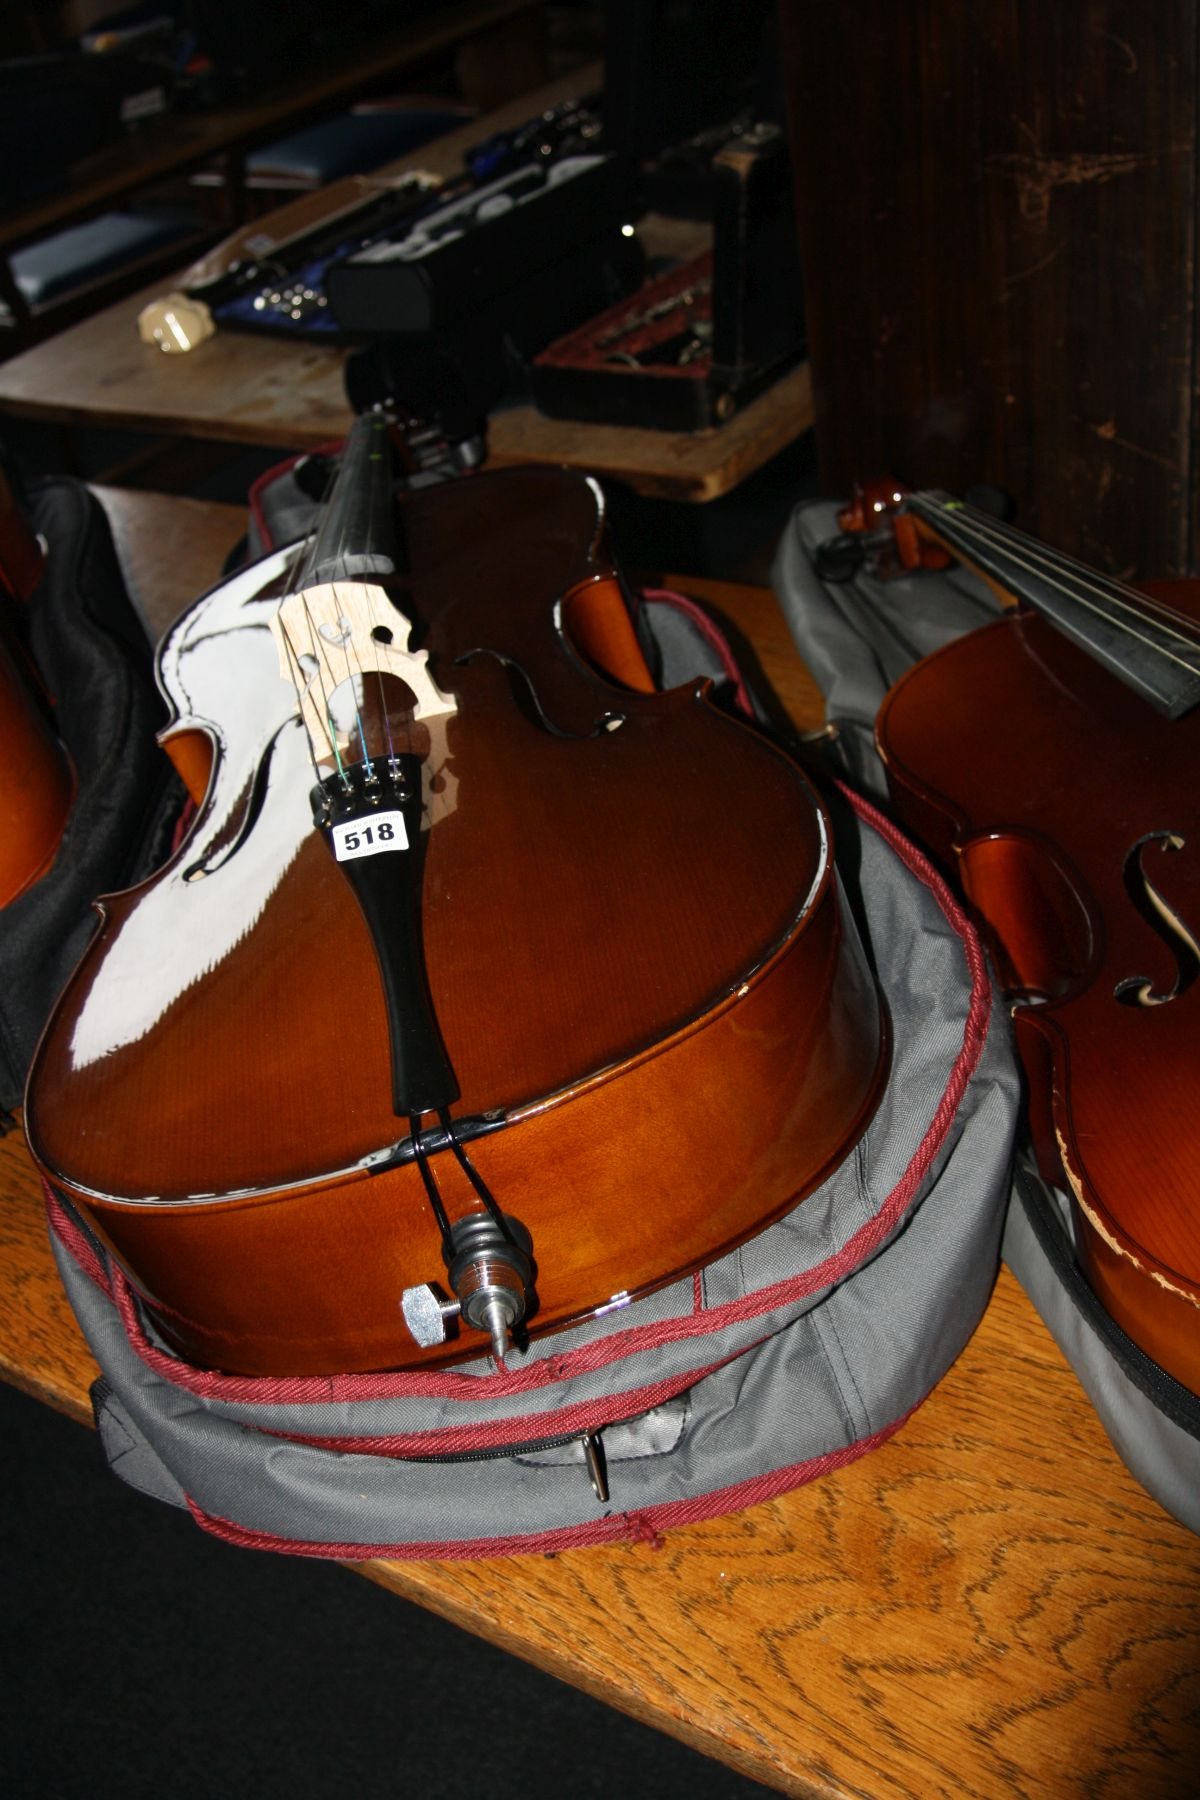 Lot 518 - A STENTOR STUDENT 2 1/2 SIZE CELLO, with bow and padded case 110cm long